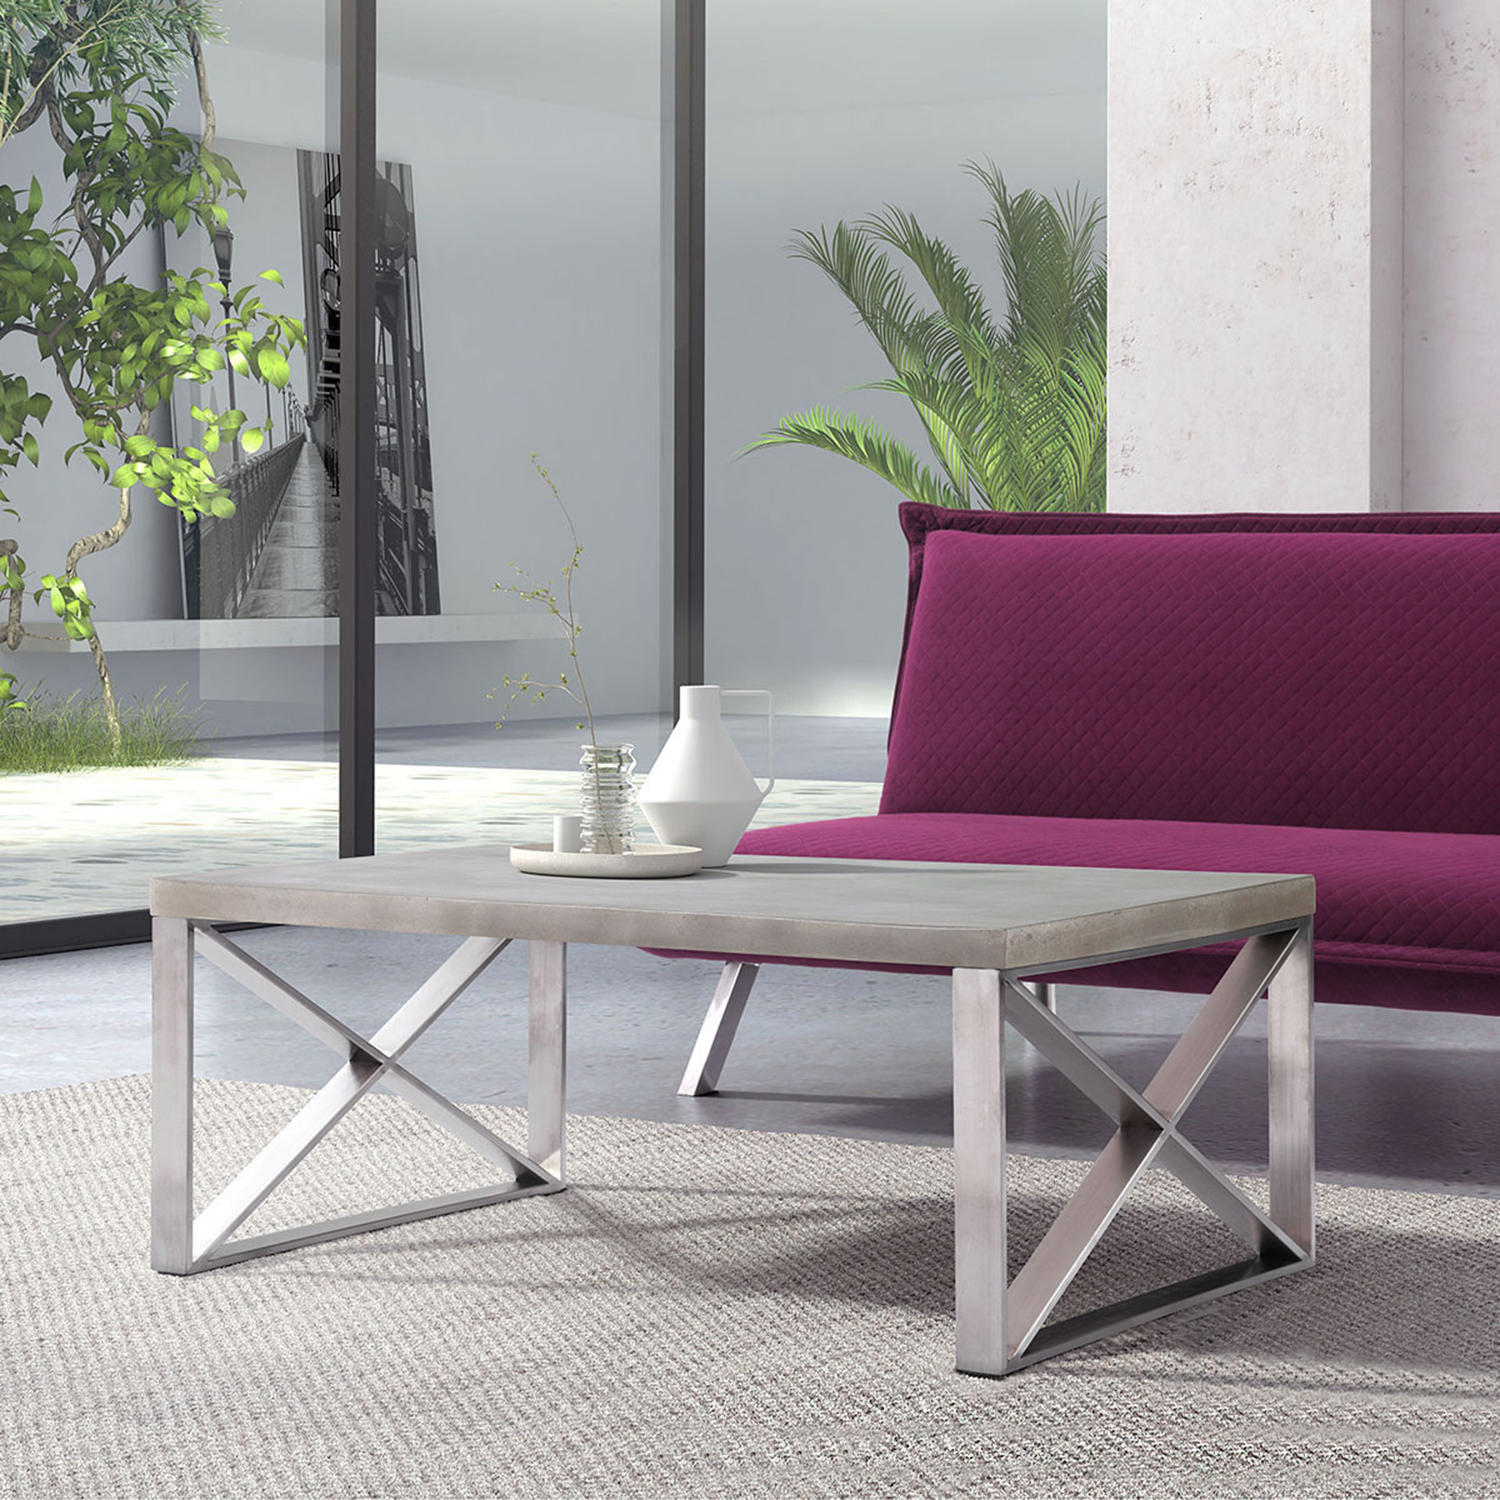 Paragon Coffee Table - Cement - ZM-100202